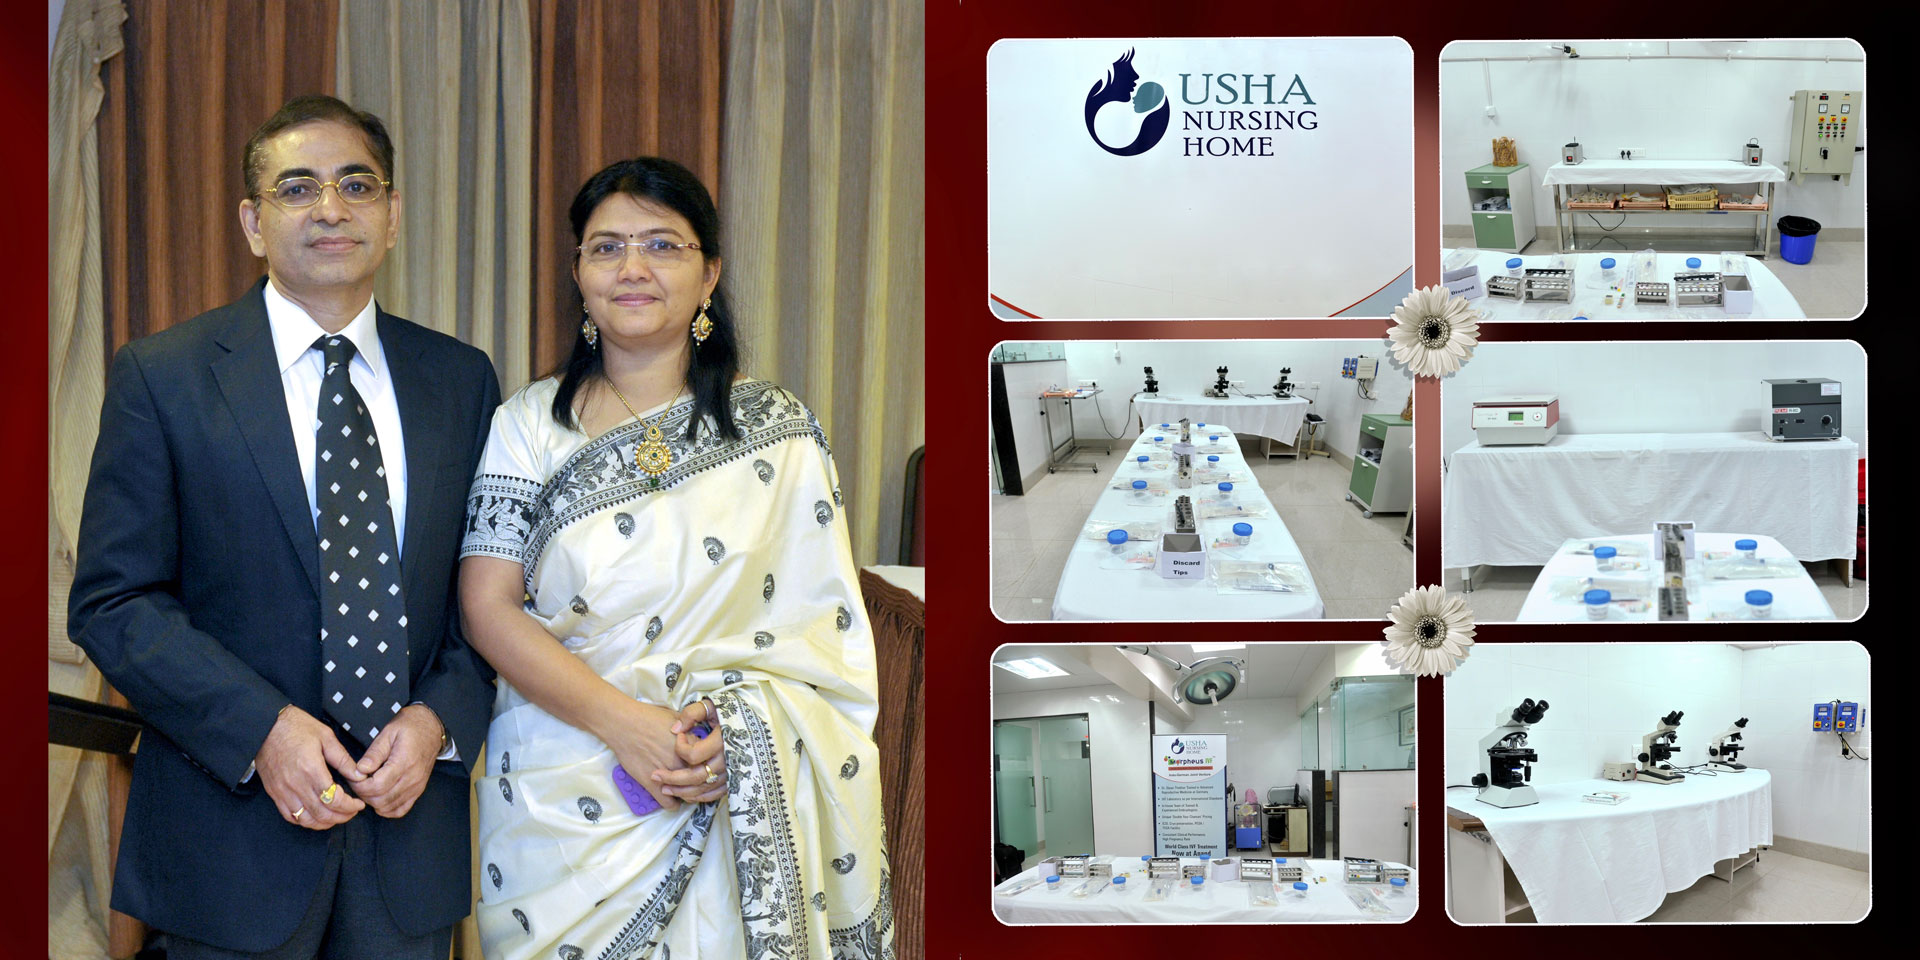 Dr. Dipan Thakkar and Dr. Usha Thakkar have over 30+ years of experience in Pregnancy Amniocentesis Treatment, Blastocyst Culture Transfer and Freezing Embryos, Endometriosis and Chocolate Cyst, Low Cost IVF Treatment in Gujarat, Test Tube Baby Cost in Gujarat, IVF Fertility Treatment ProcessDr. Dipan Thakkar and Dr. Usha Thakkar